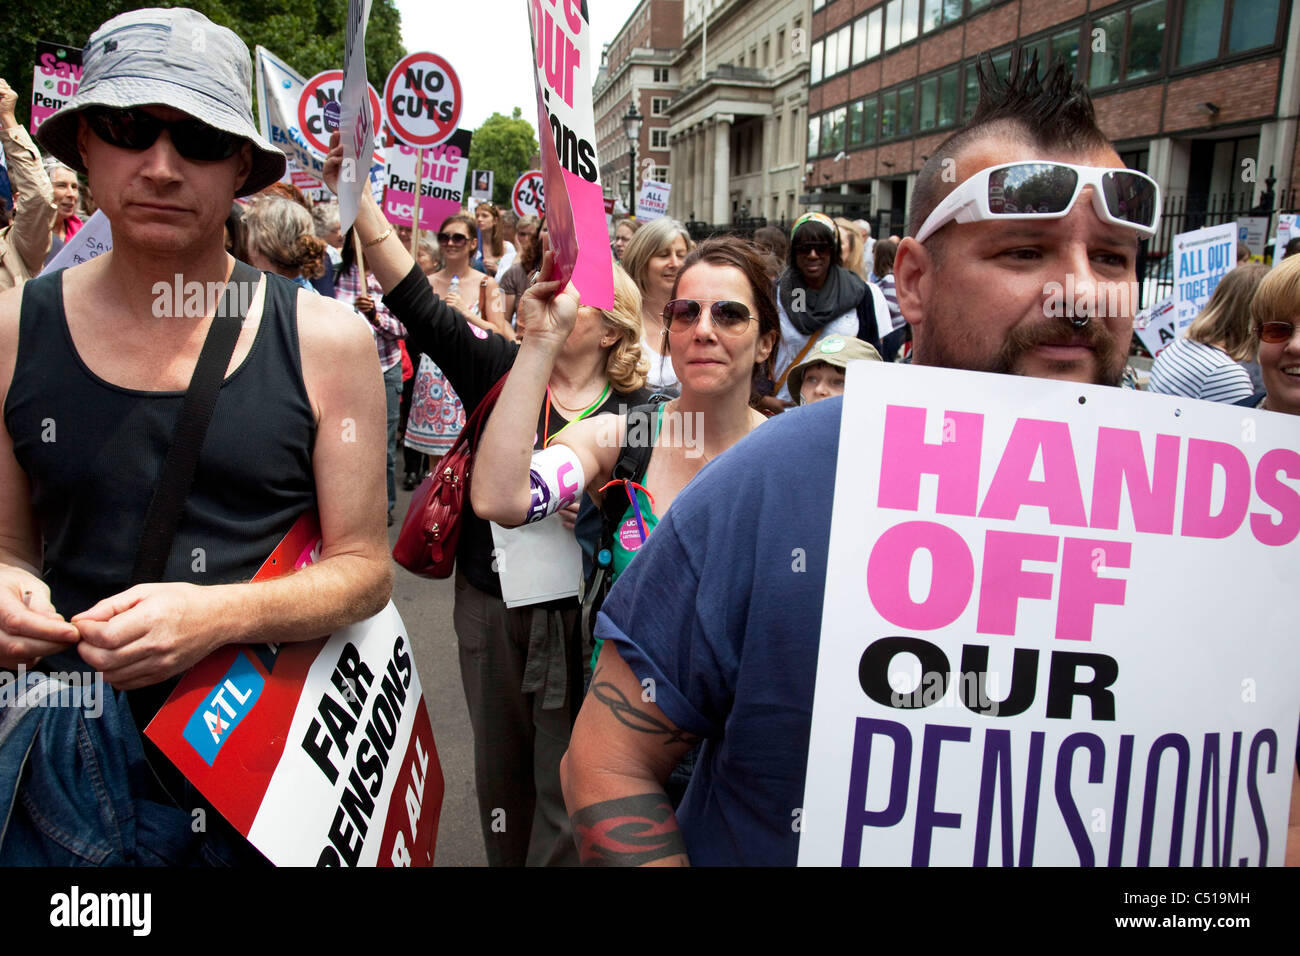 Demonstration in Central London on a day of General Strike action by public sector workers and unions. - Stock Image